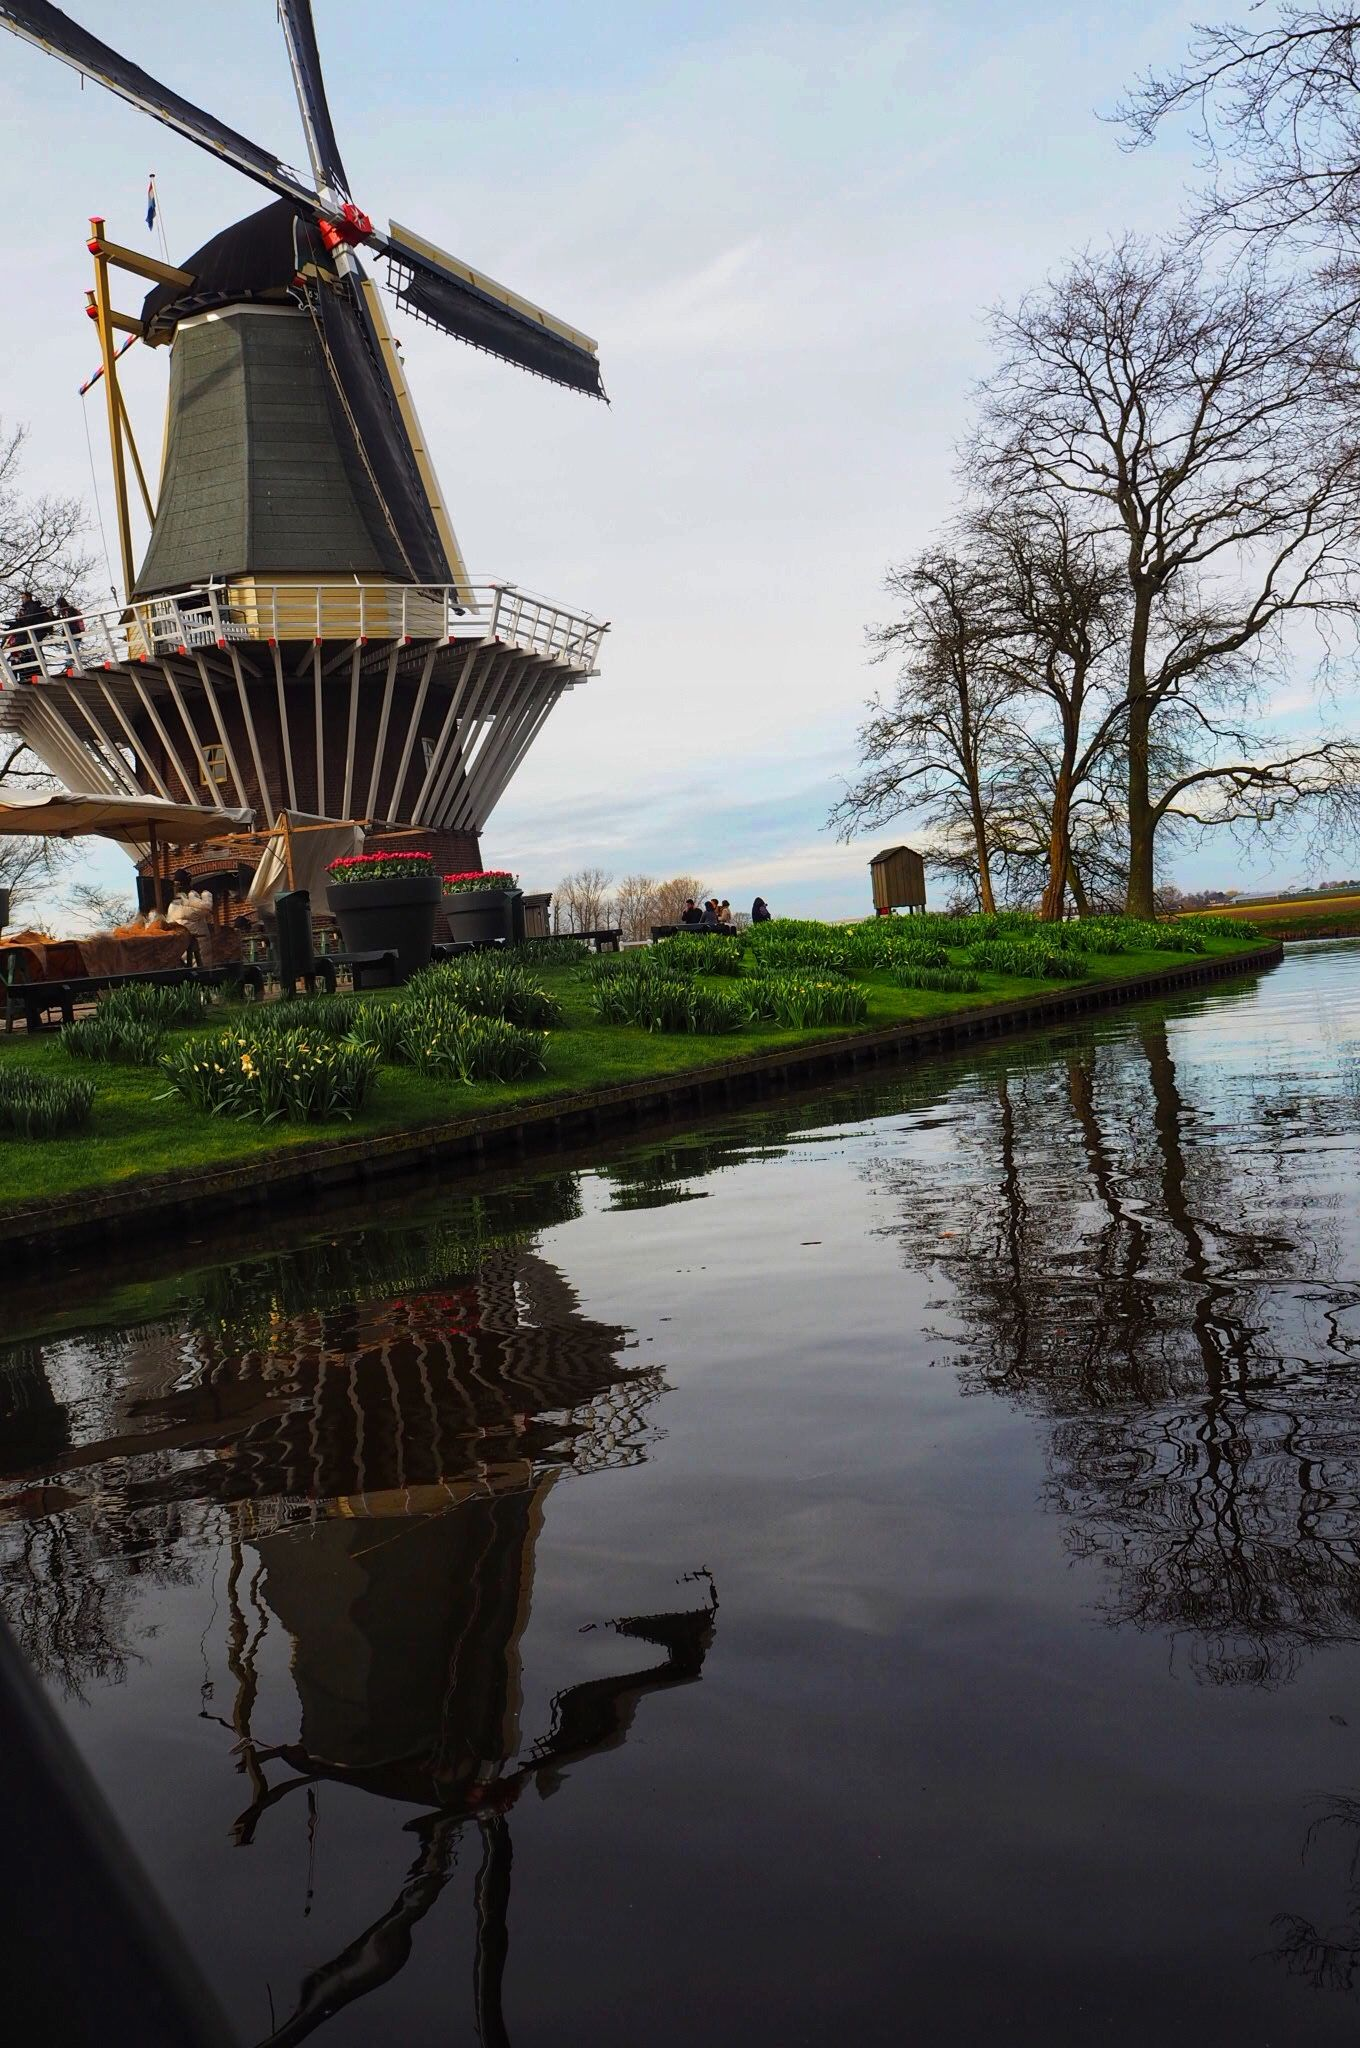 Windmill reflections at Keukenhof Tulip Gardens Lisse